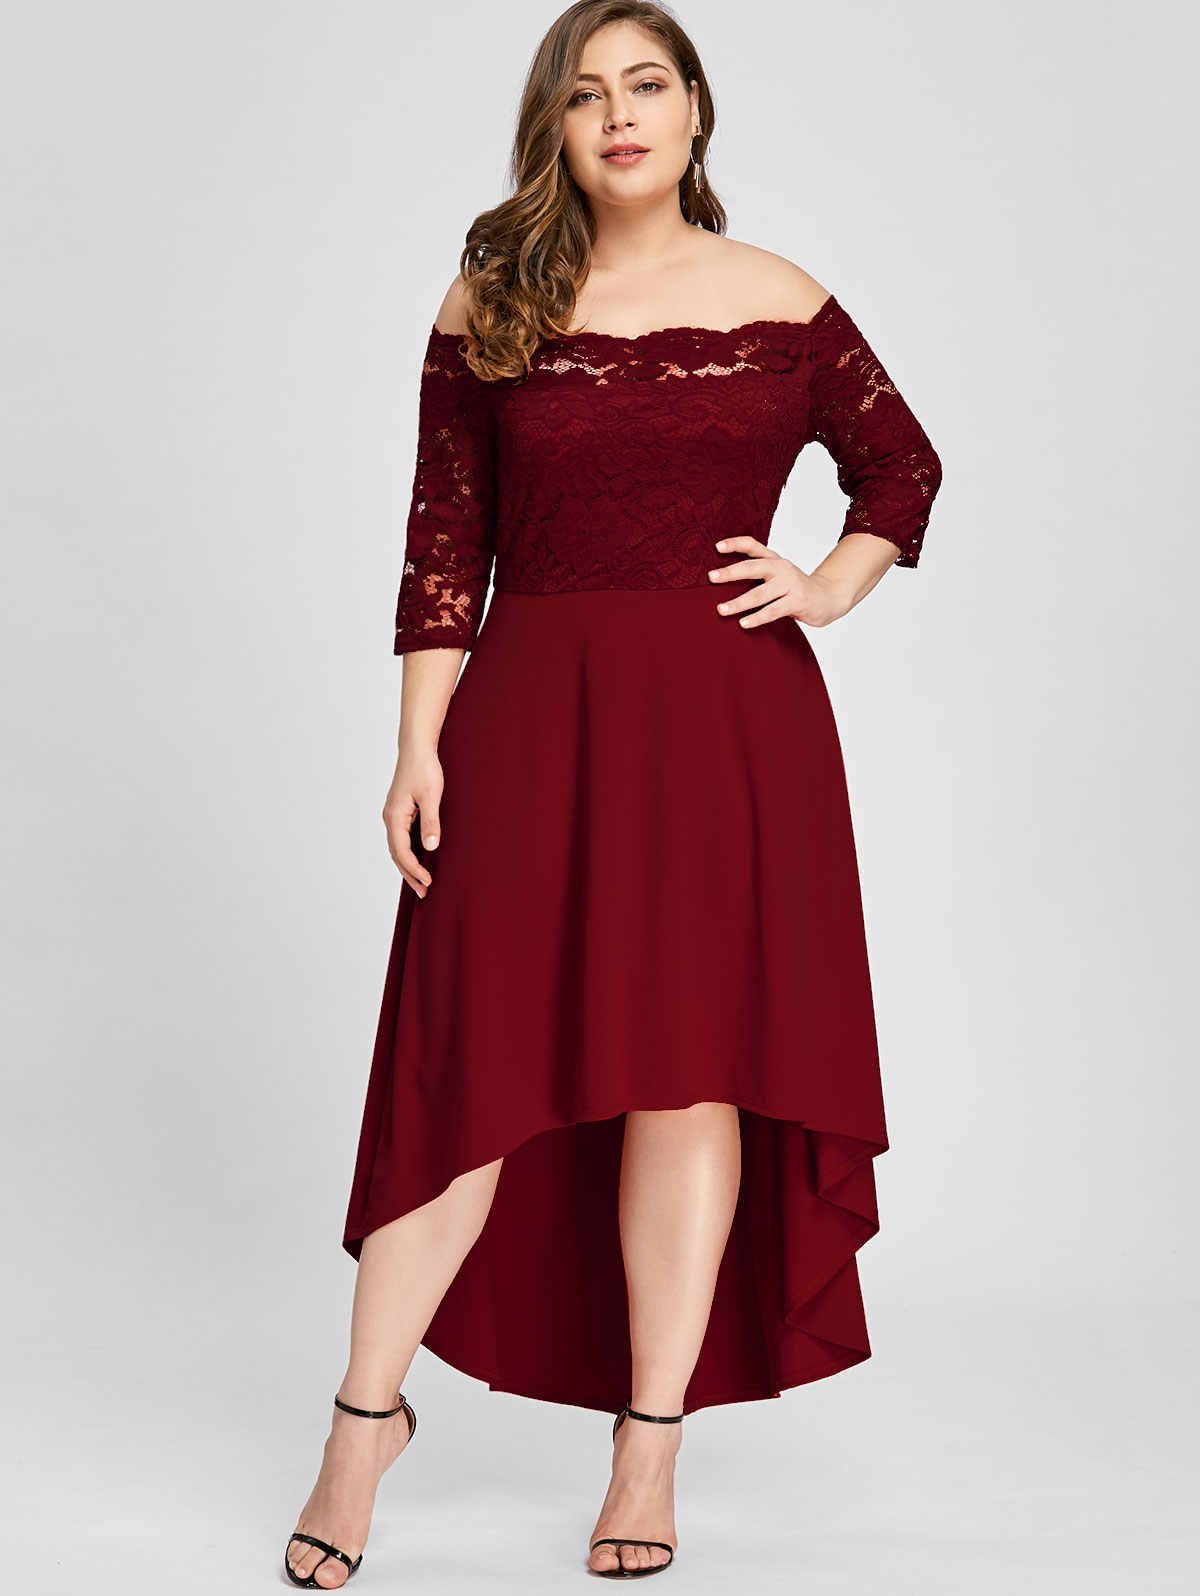 06912ddee4 Wipalo Women Party Dress Plus Size Off Shoulder Dip Hem Lace 3 4 Length  Sleeves